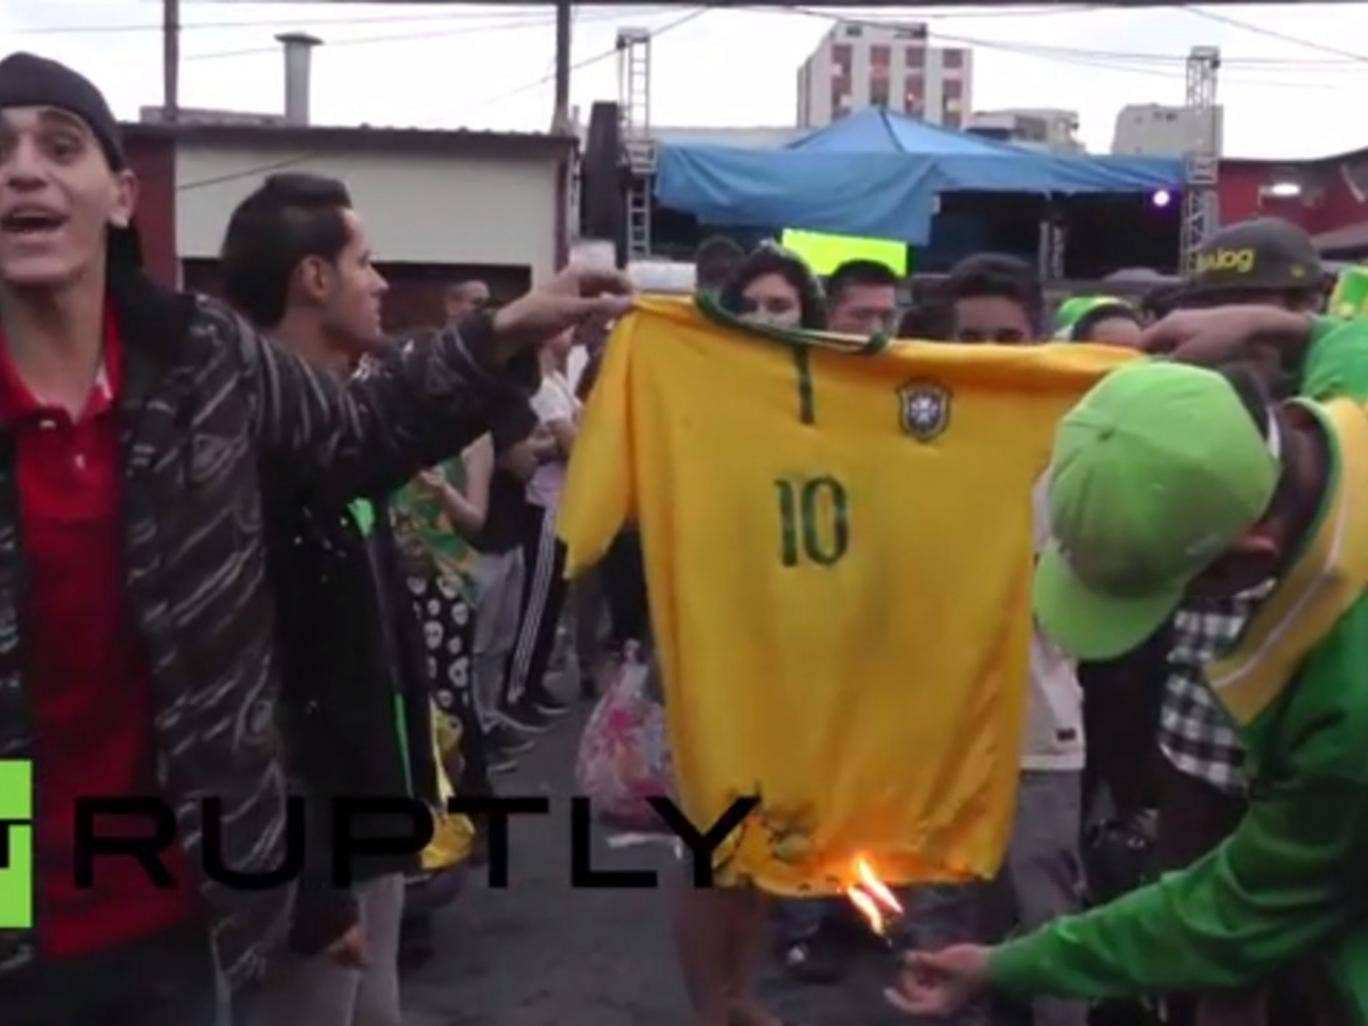 Fans burn a Neymar shirt on the streets of Brazil following the 7-1 defeat to Germany